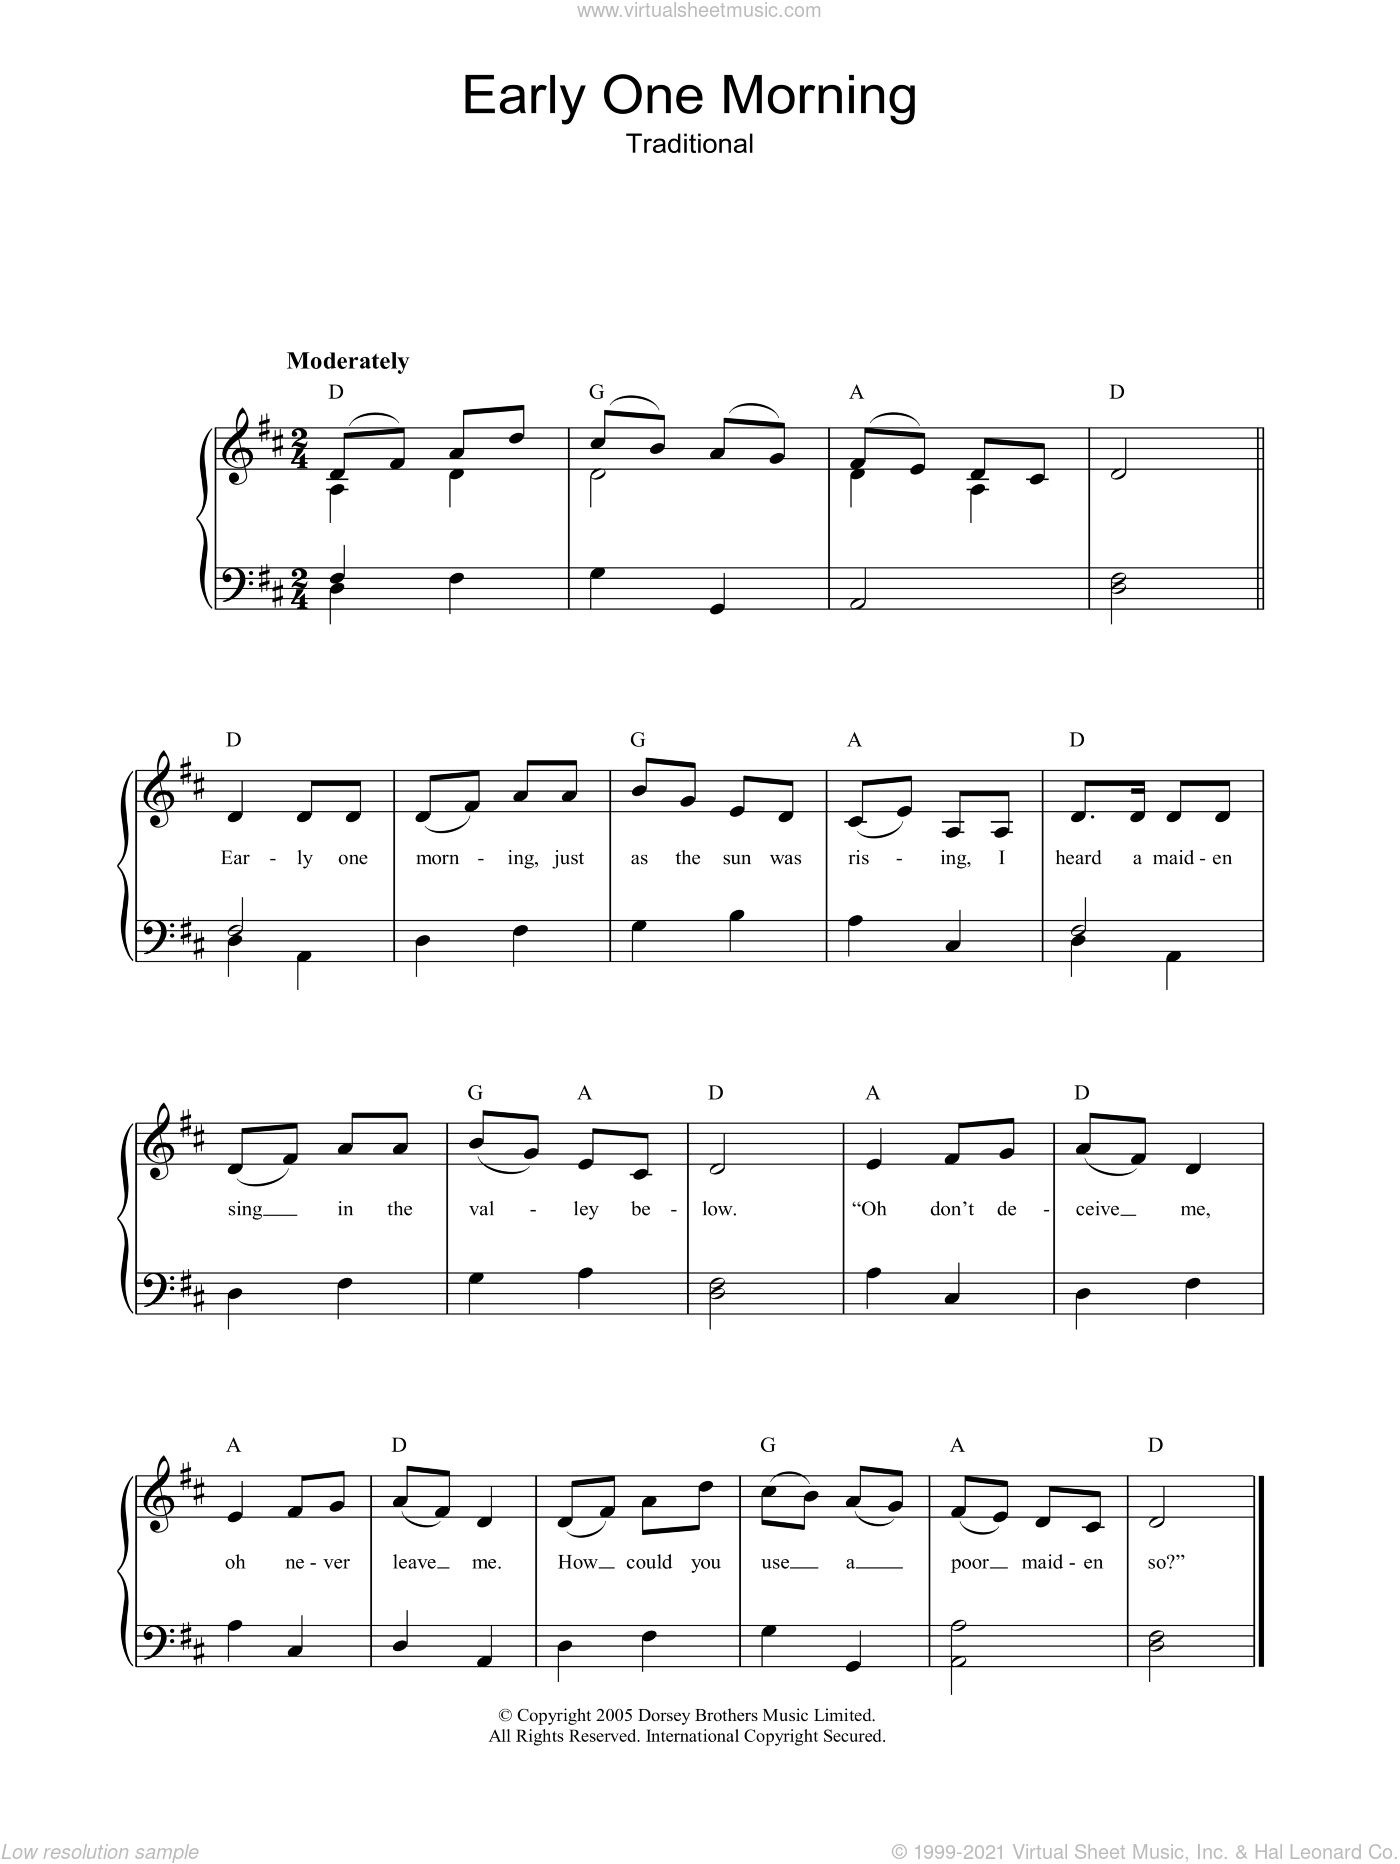 Early One Morning sheet music for piano solo, easy skill level